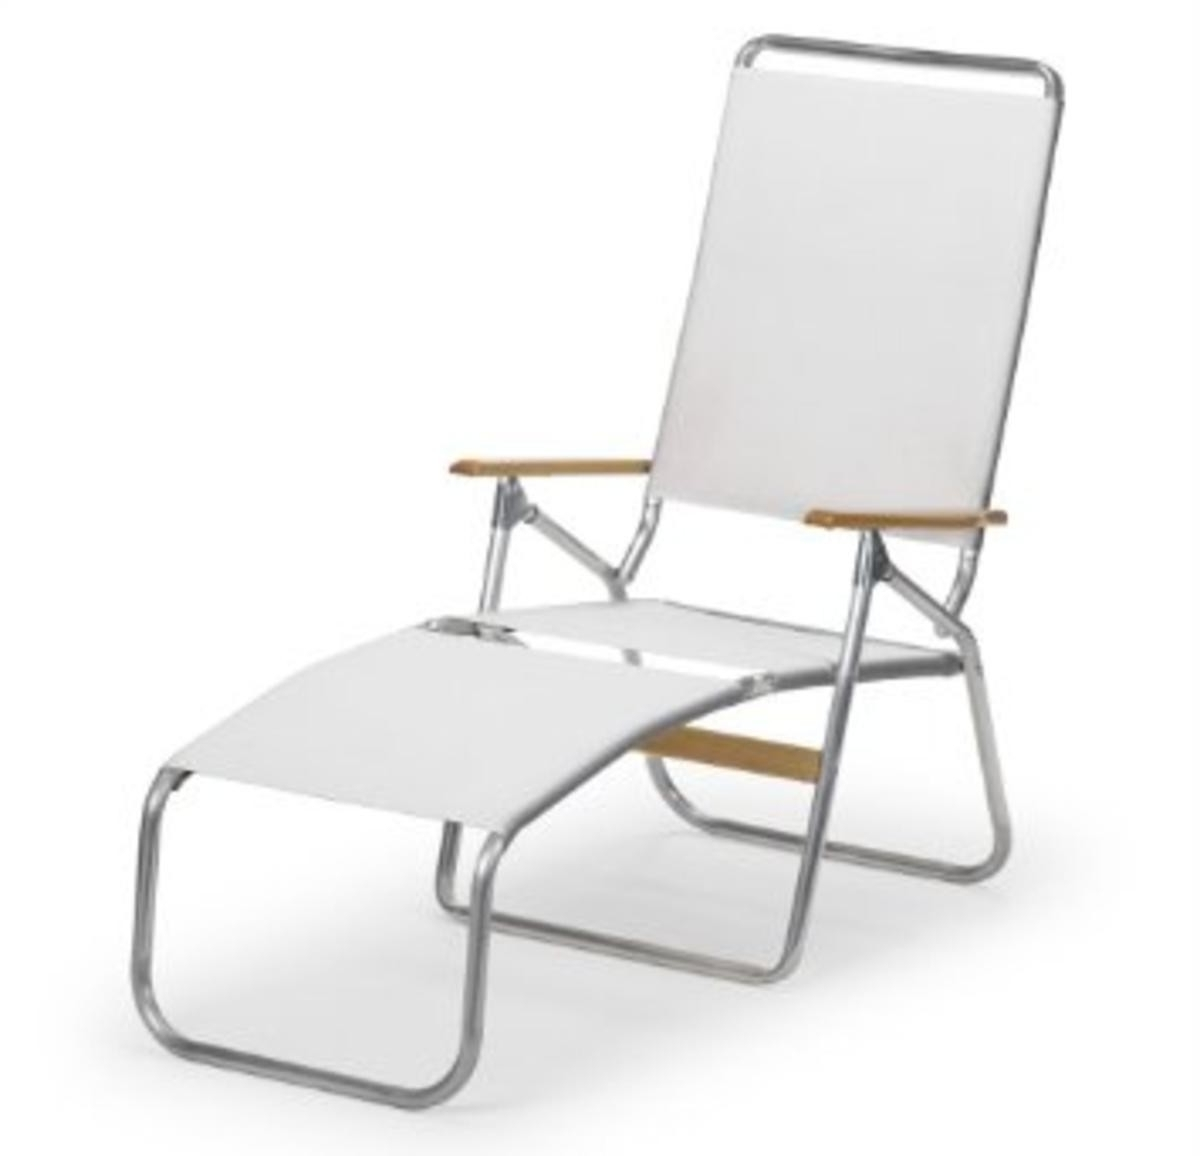 Outdoor : Lawn Chairs Lowes Outdoor Chaise Lounge Chair Resin Throughout 2018 Folding Chaise Lounge Lawn Chairs (View 8 of 15)